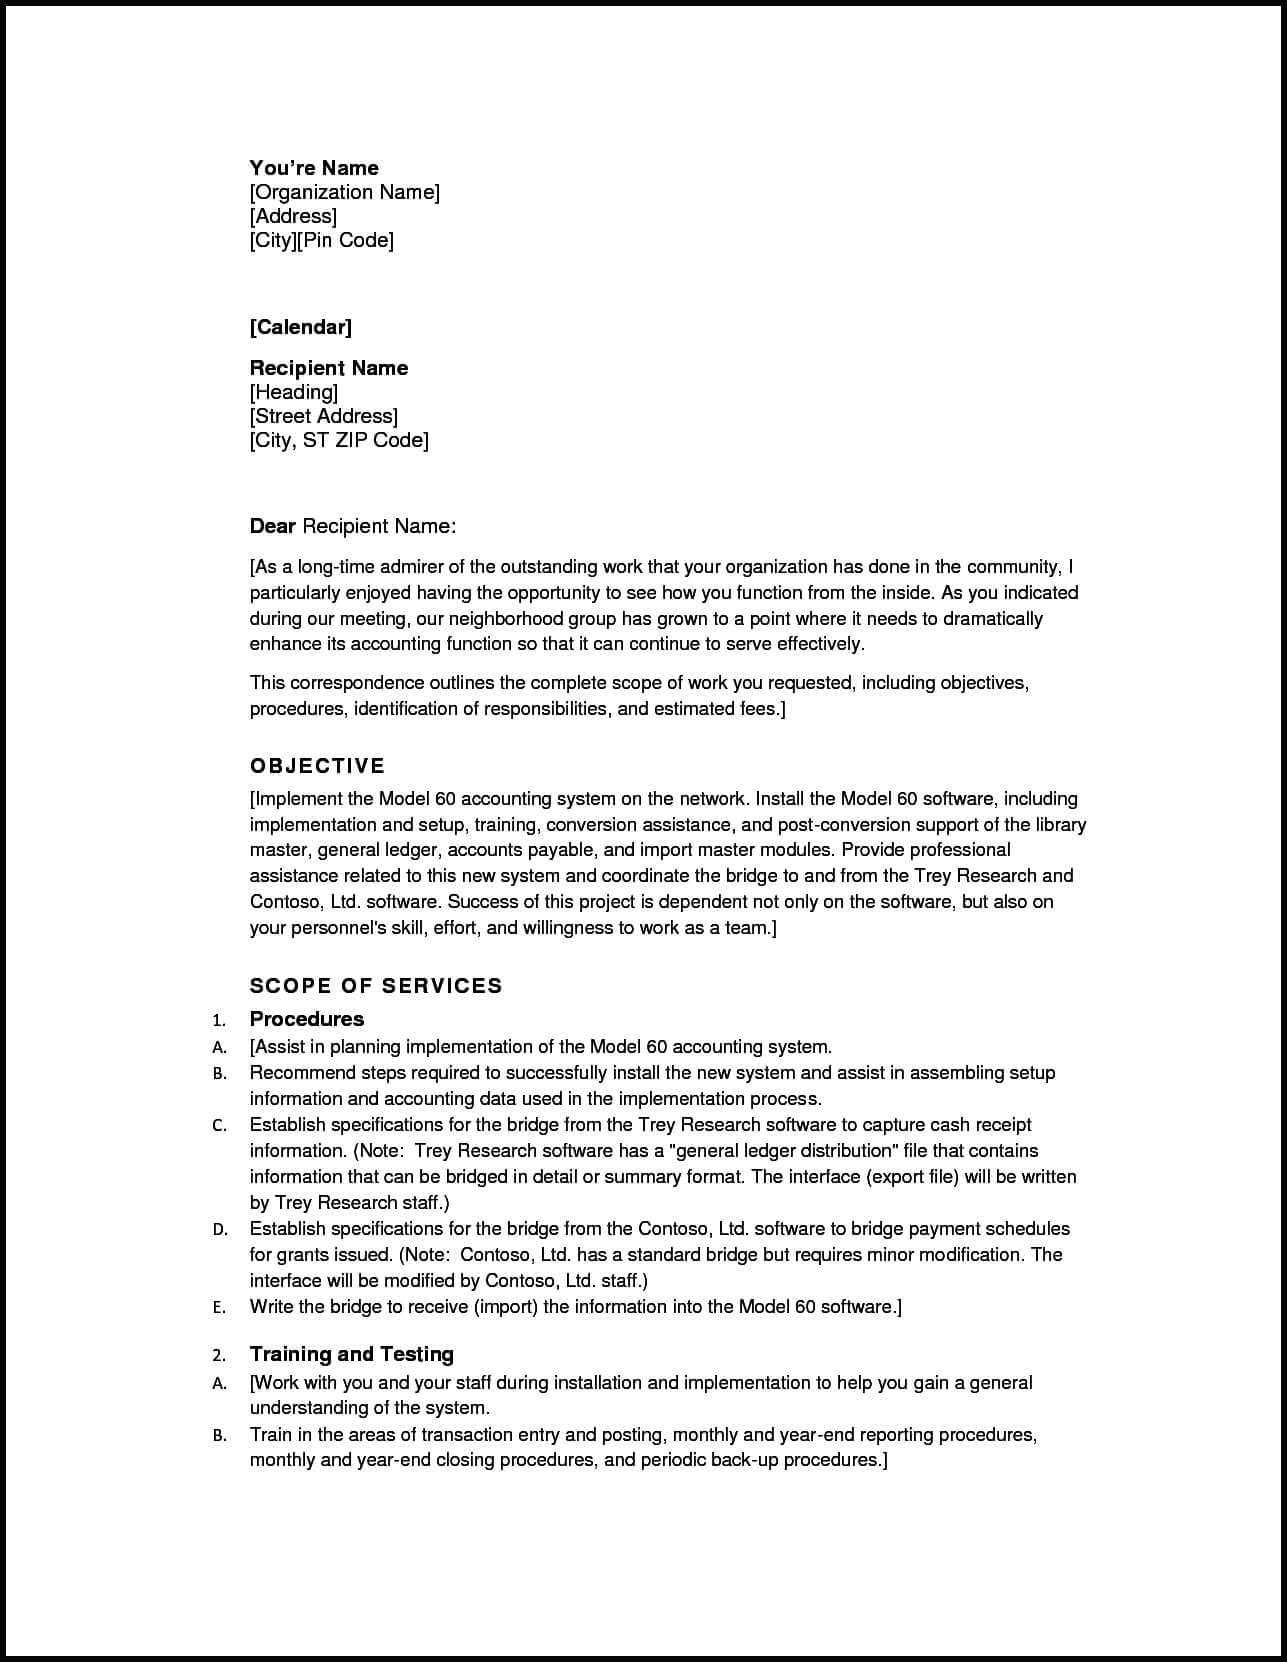 032 Template For Business Proposal Writing Bank Loan Elegant Regarding Business Proposal Template For Bank Loan